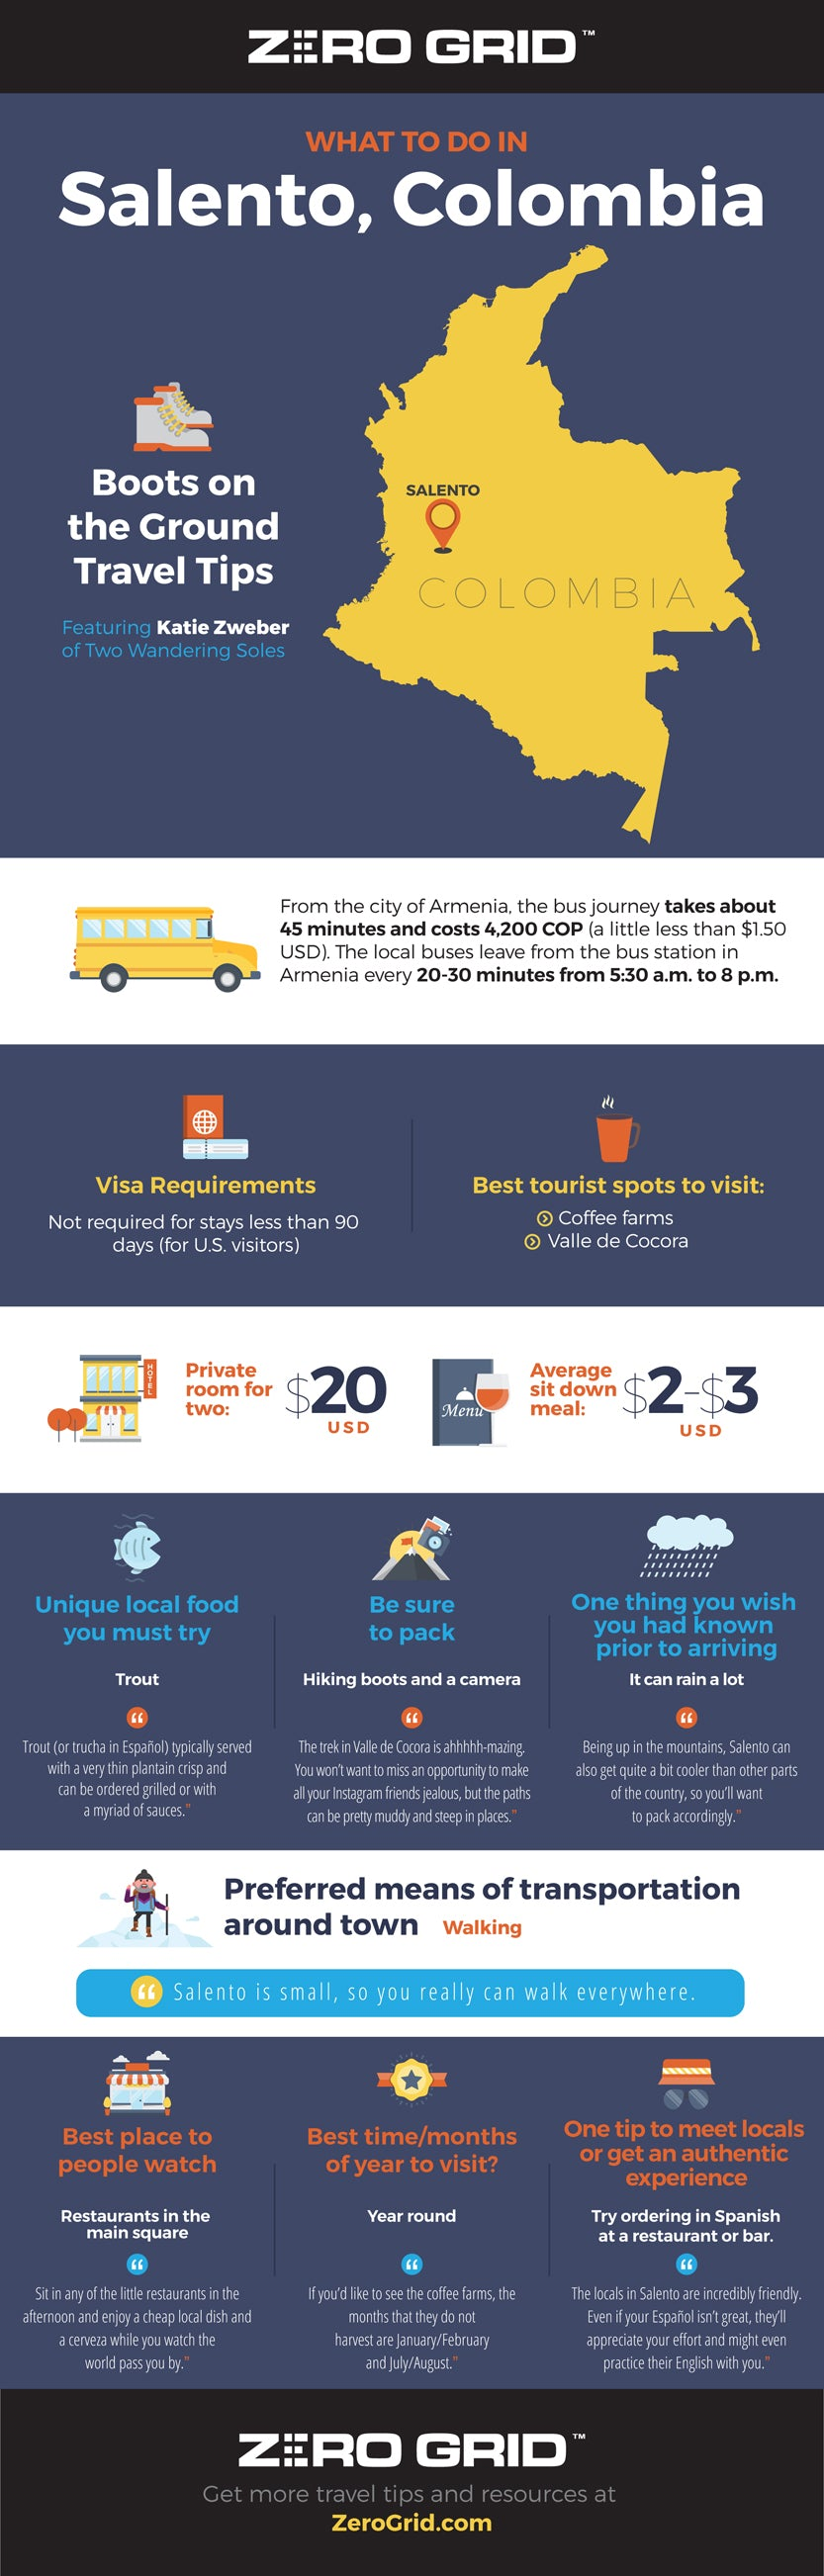 What to do in Salento, Colombia - Infographic